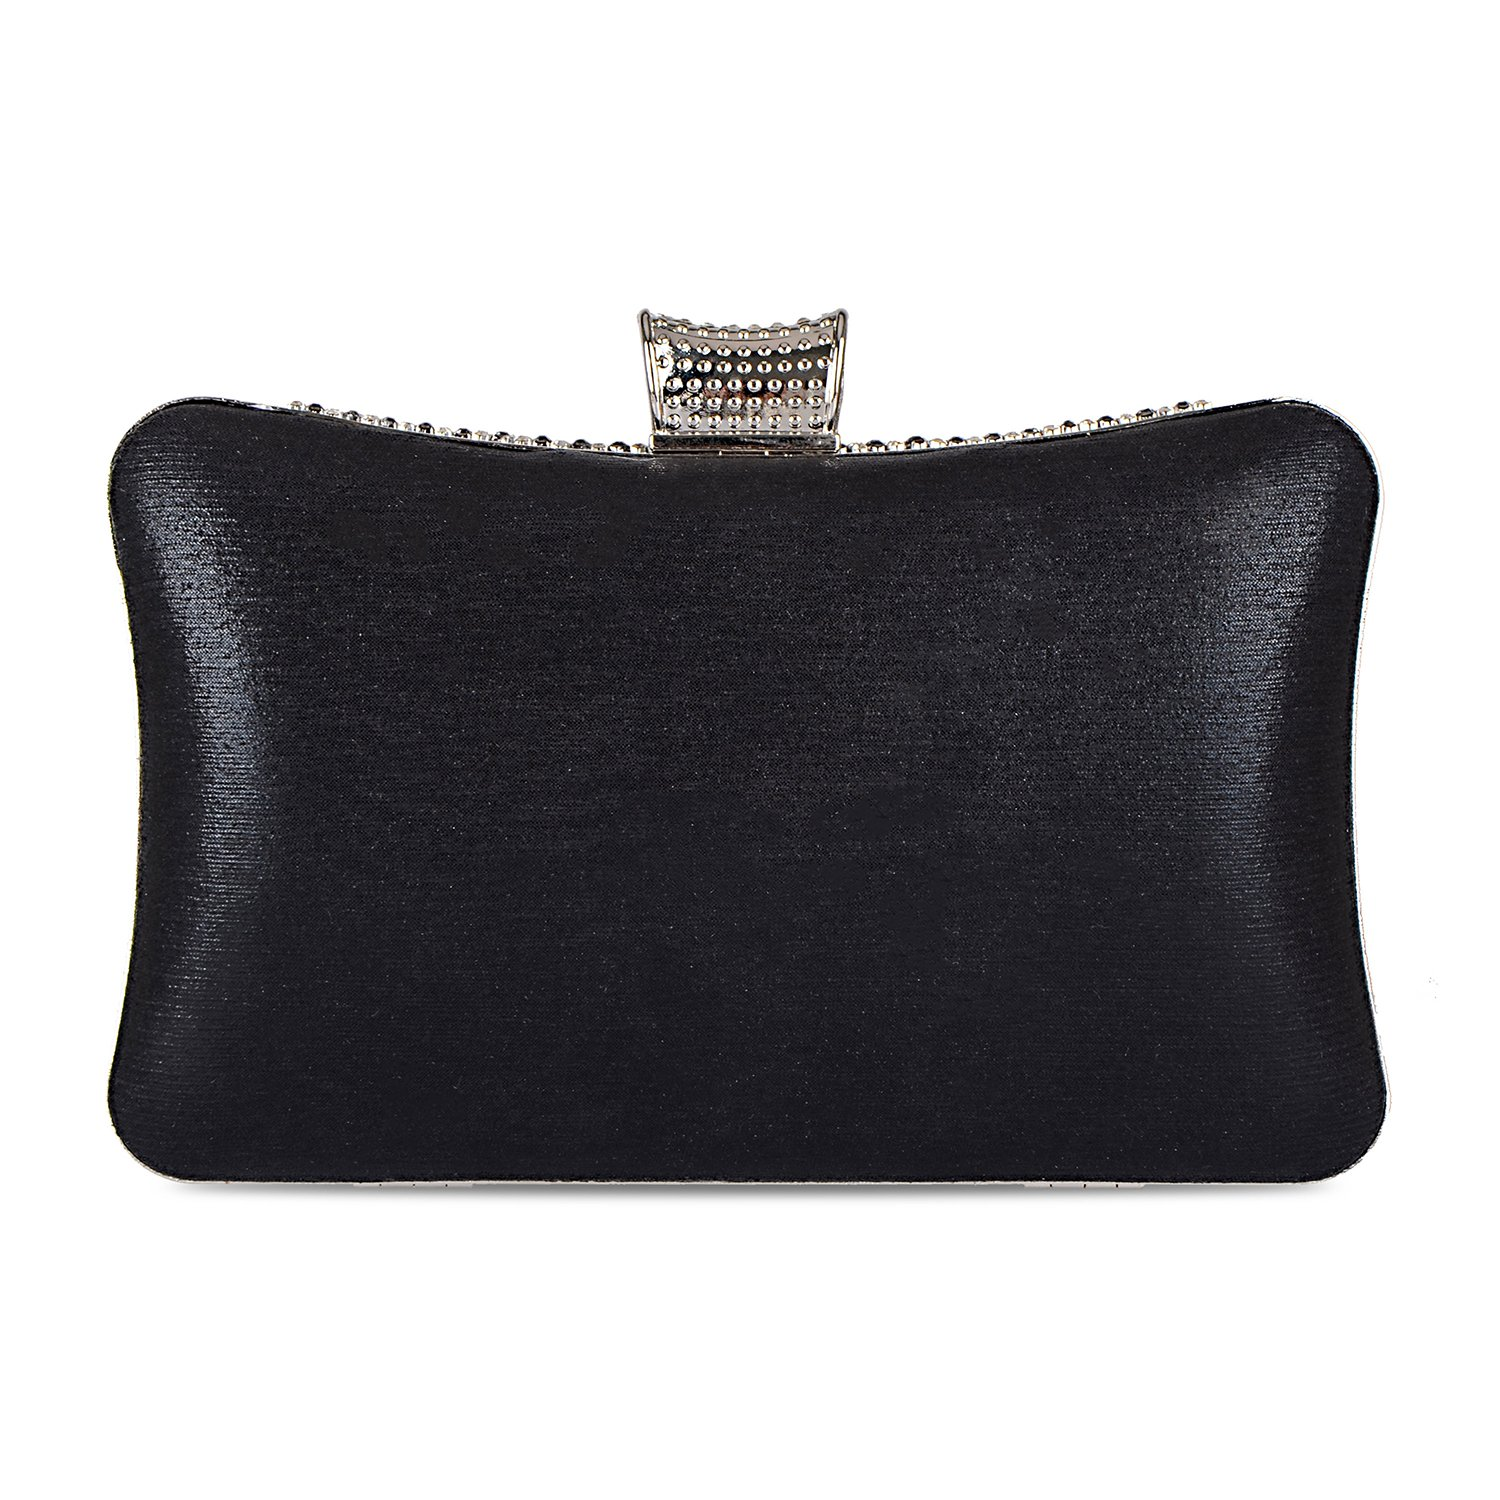 f06615962b4f 2018 Spring Women s Handmade Handbag Silk Fabric Rhinestone Beaded Envelope  Clutch Wedding Purse (Black)  Handbags  Amazon.com